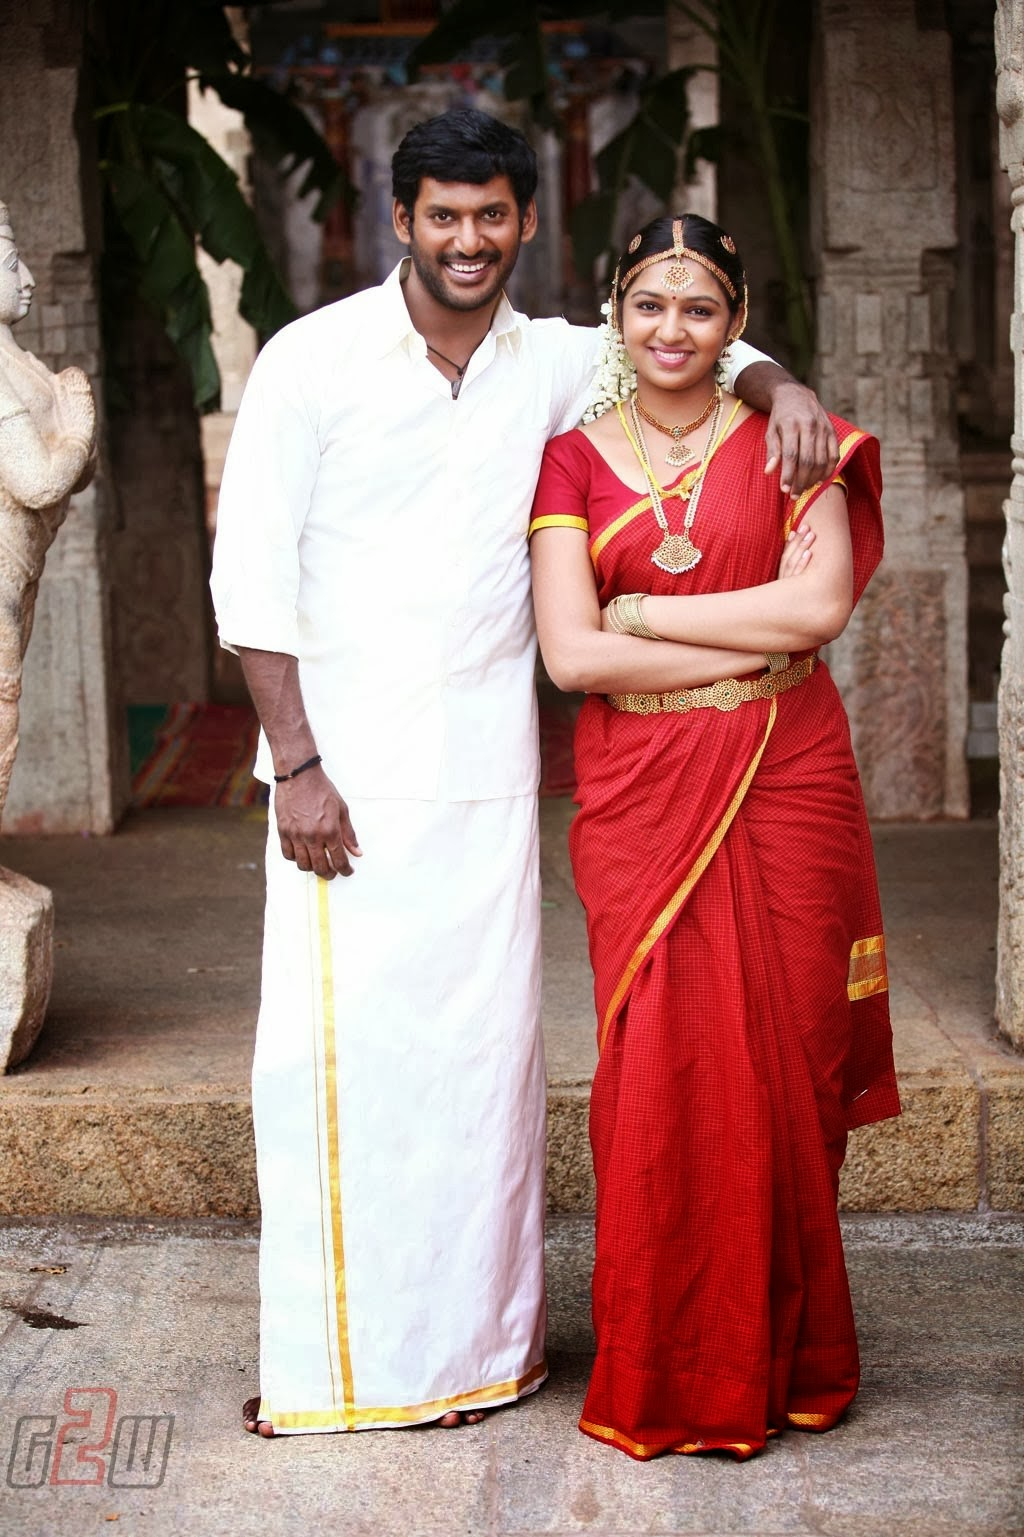 VISHAL AND LAKSHMI MENON STILLS FROM PANDIYA NAADU MOVIE ...Lakshmi Menon In Raghuvinte Swantham Rasiya